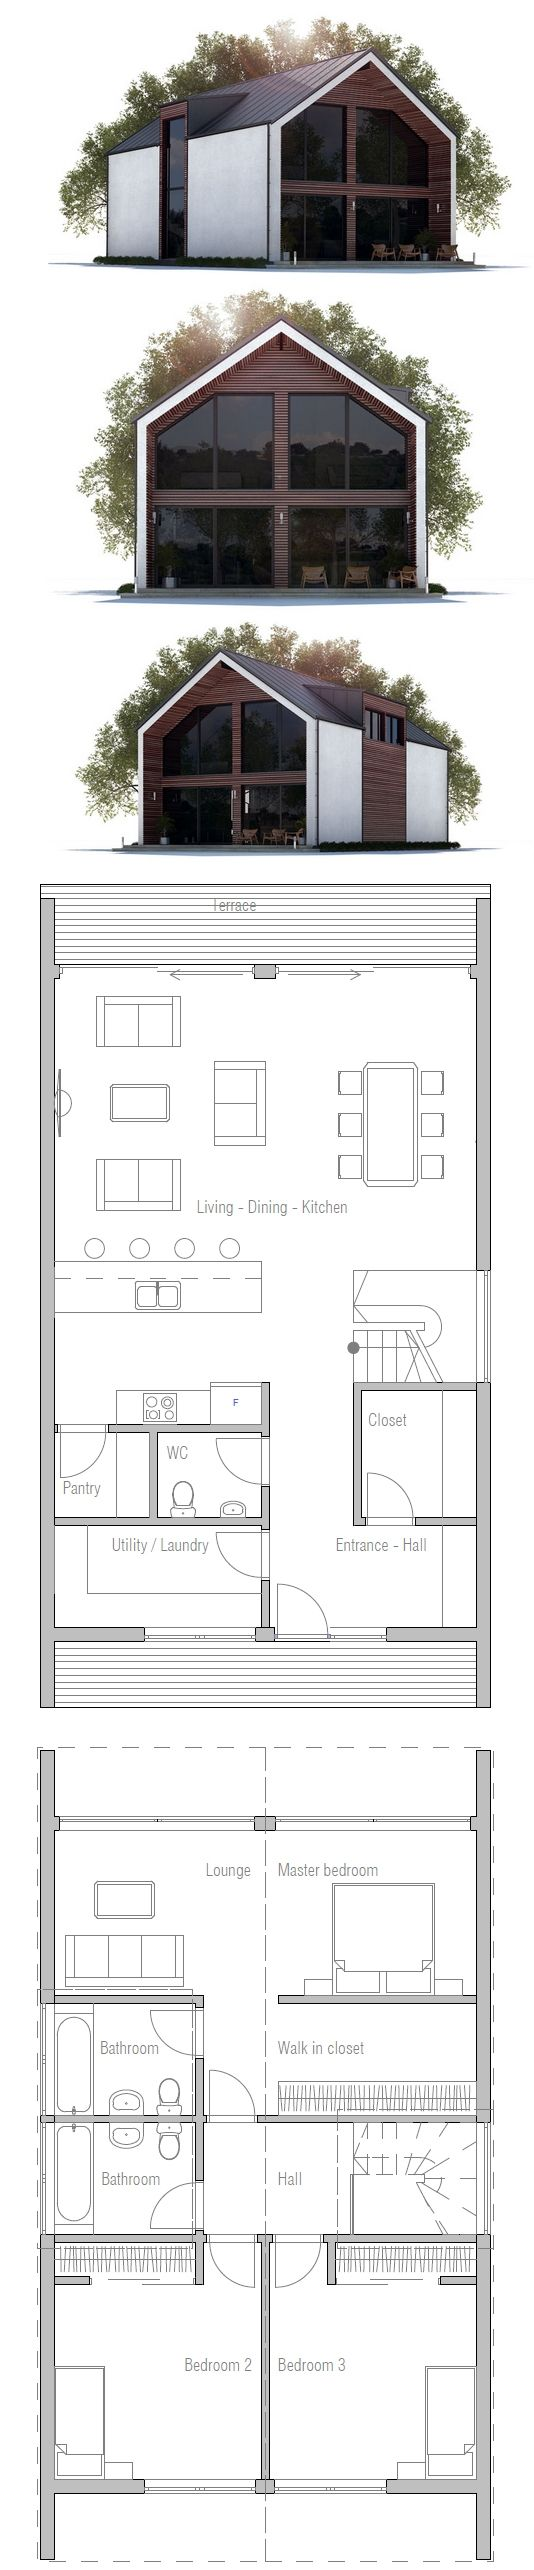 Alternative floor plan using 4x40 foot shipping container with a clear story between the two top to create more width